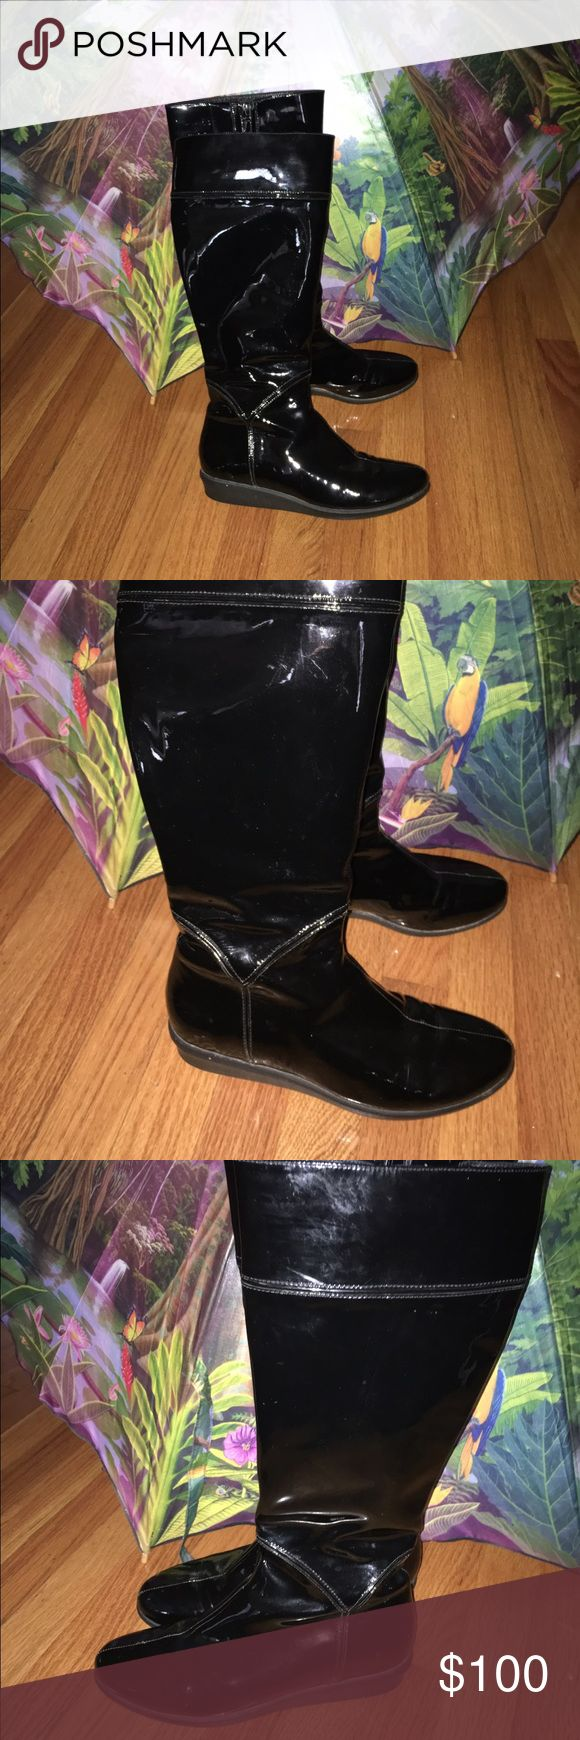 "Cole Haan Patent Leather Boots- offers considered Water proof boots with NIKE AIR Technology.  Approximate measurements: Wedge Heels measure: 1.125"" Shaft height 16"" Circumference 15.5"" Rubber Logo Outsole length from tip to heel: 10.125"" Outsole width at widest point: 3.375"" Full Zipper w/ tassel pull minor wear on the front left toe seam and only a few minor scuffs. Cole Haan Shoes Winter & Rain Boots"